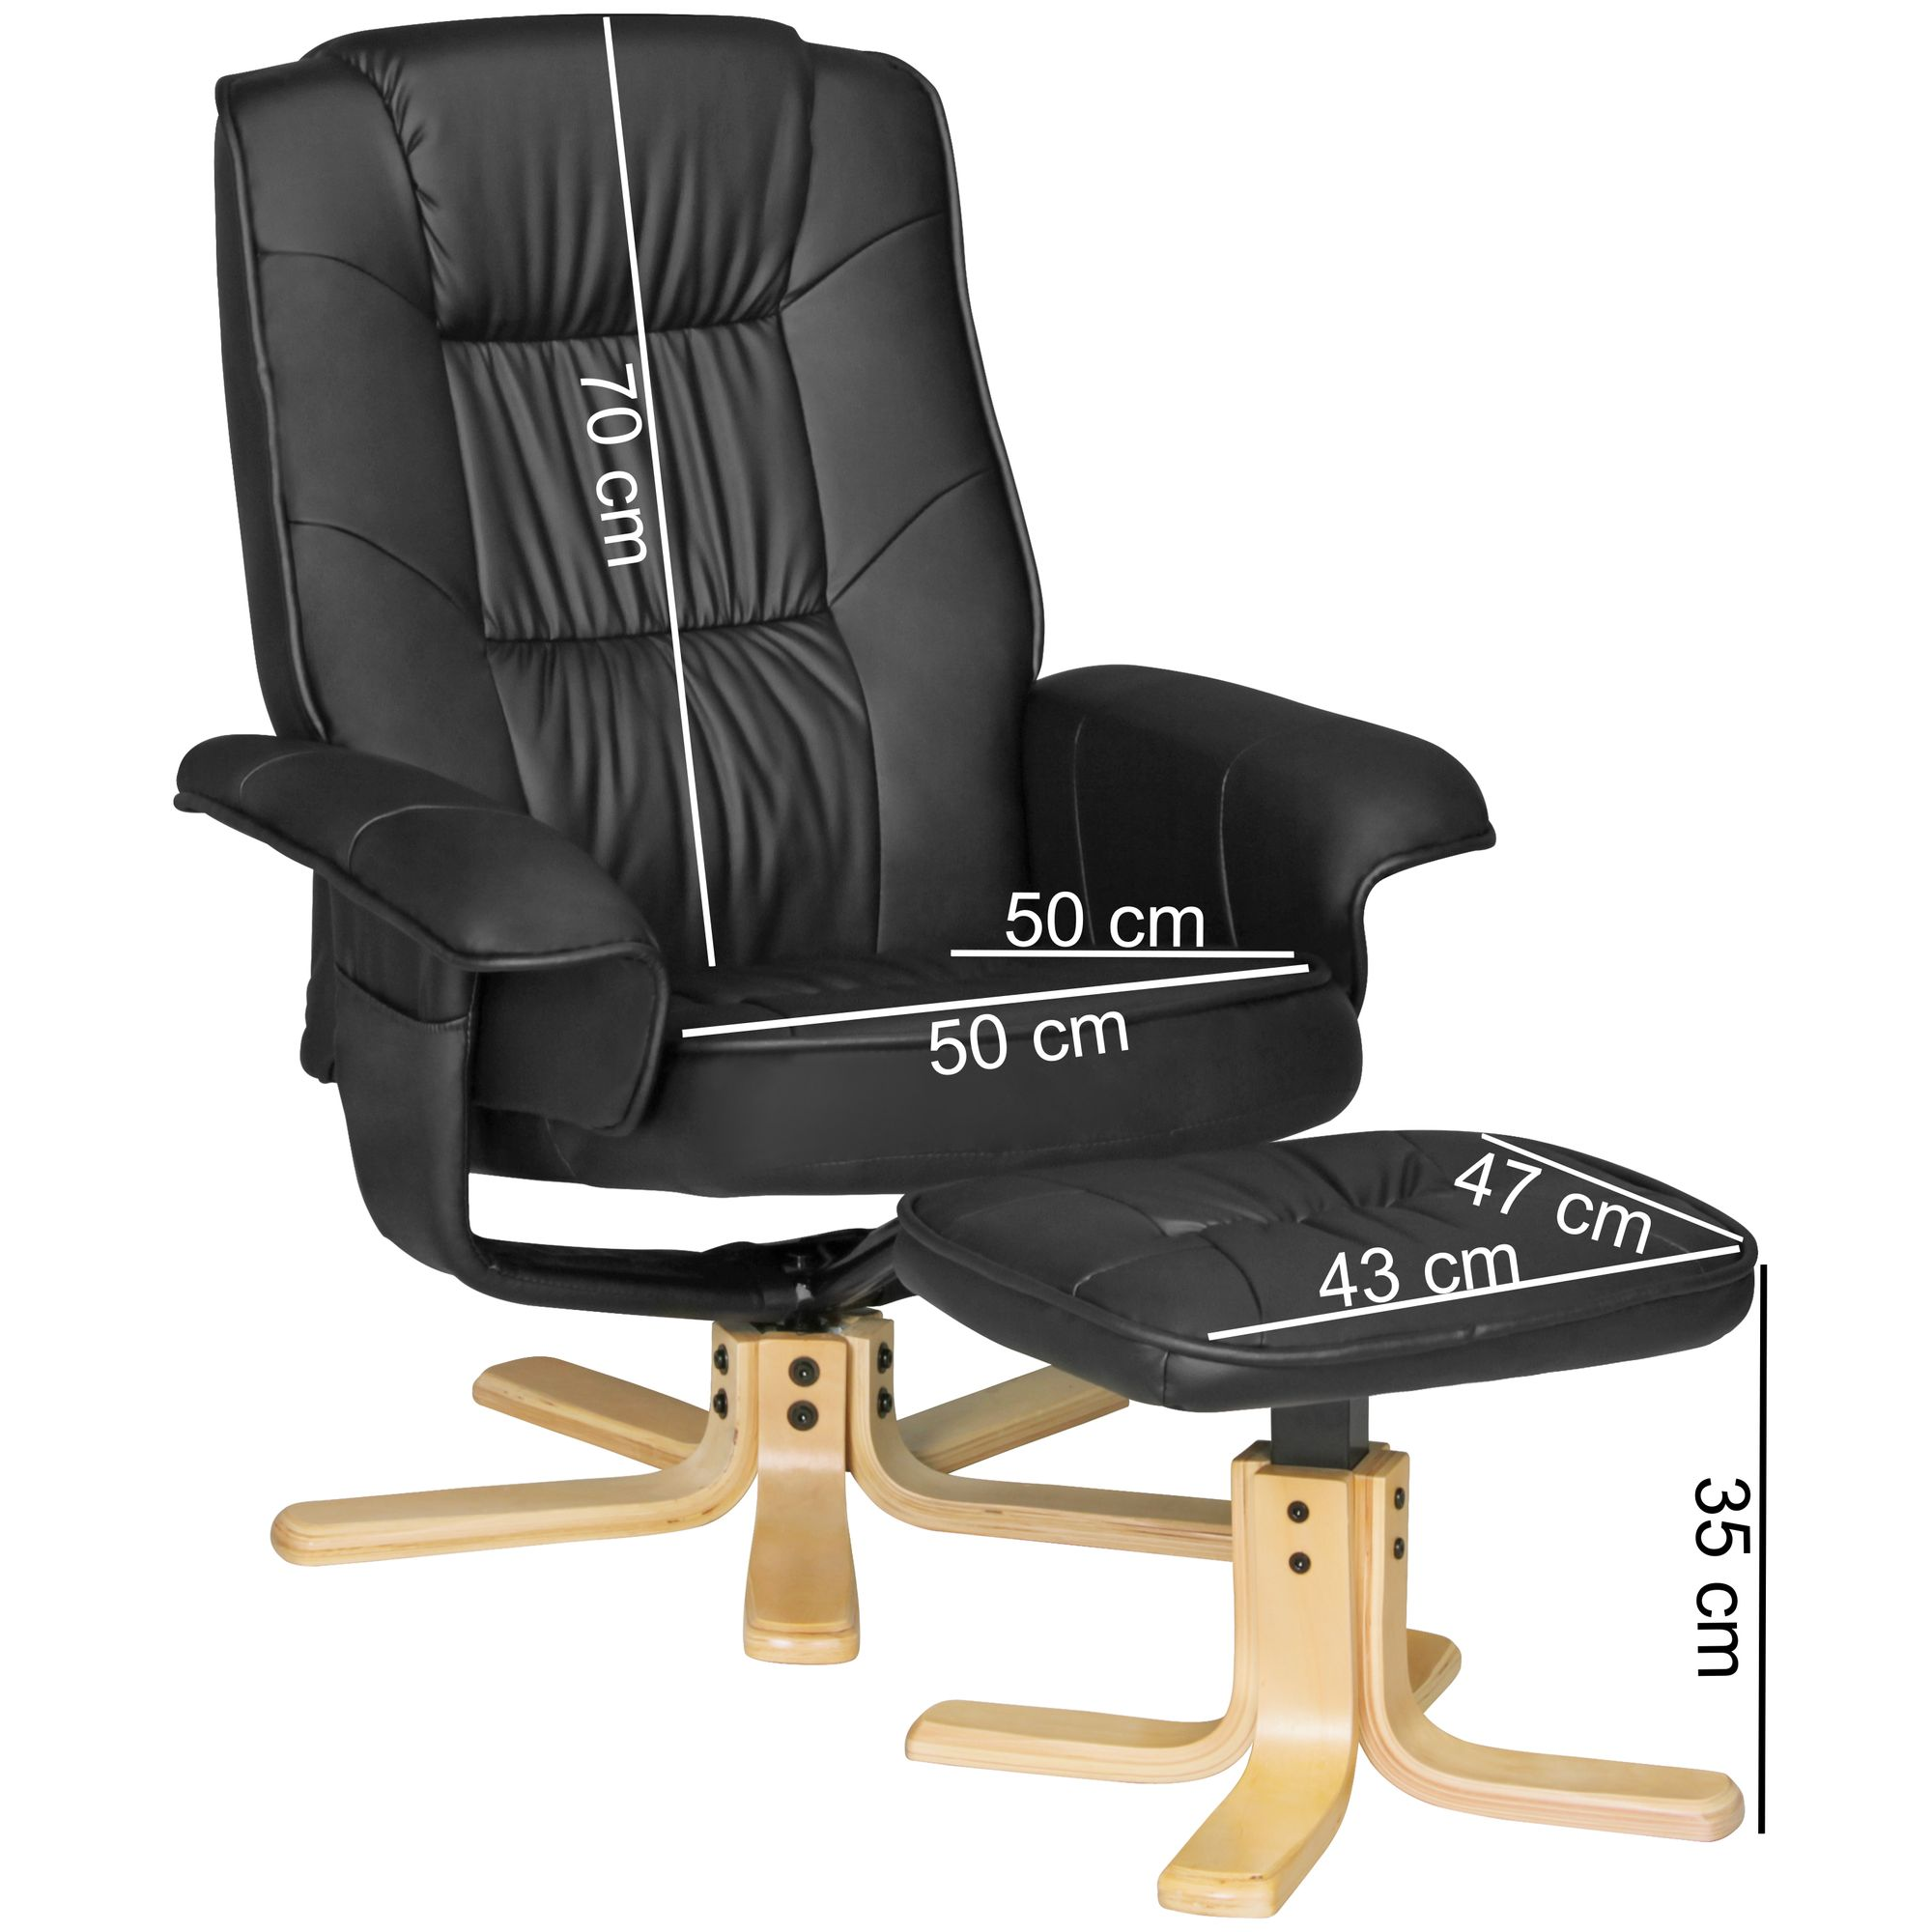 Amstyle Fernsehsessel Comfort Tv Design Relax Sessel